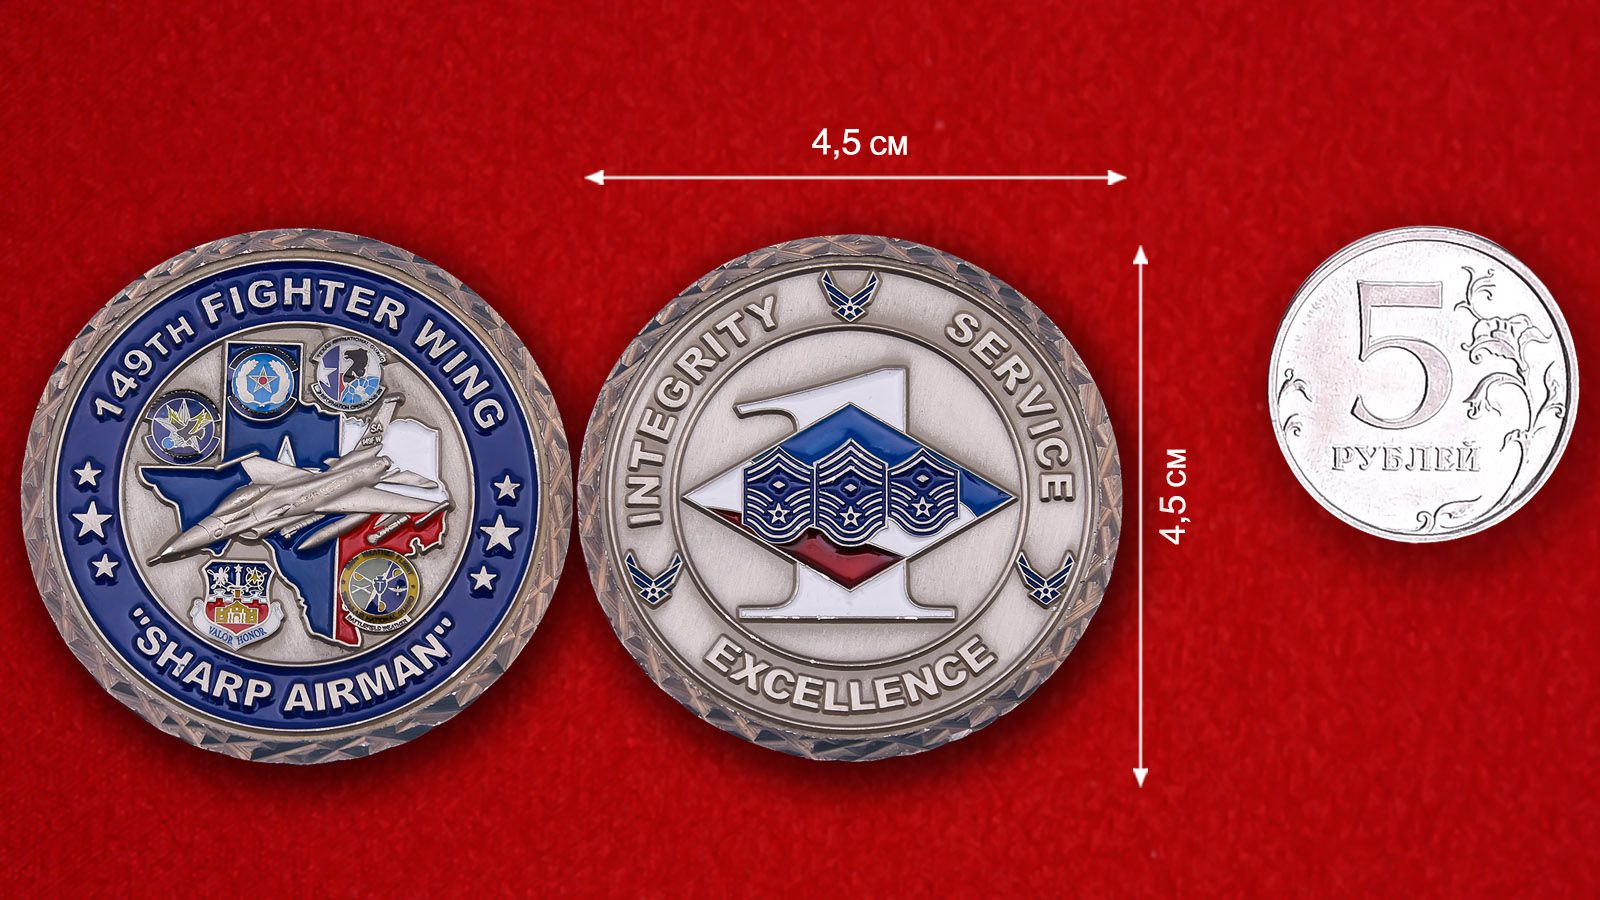 Challenge Coin 149 th Fighter Wing - comparative size